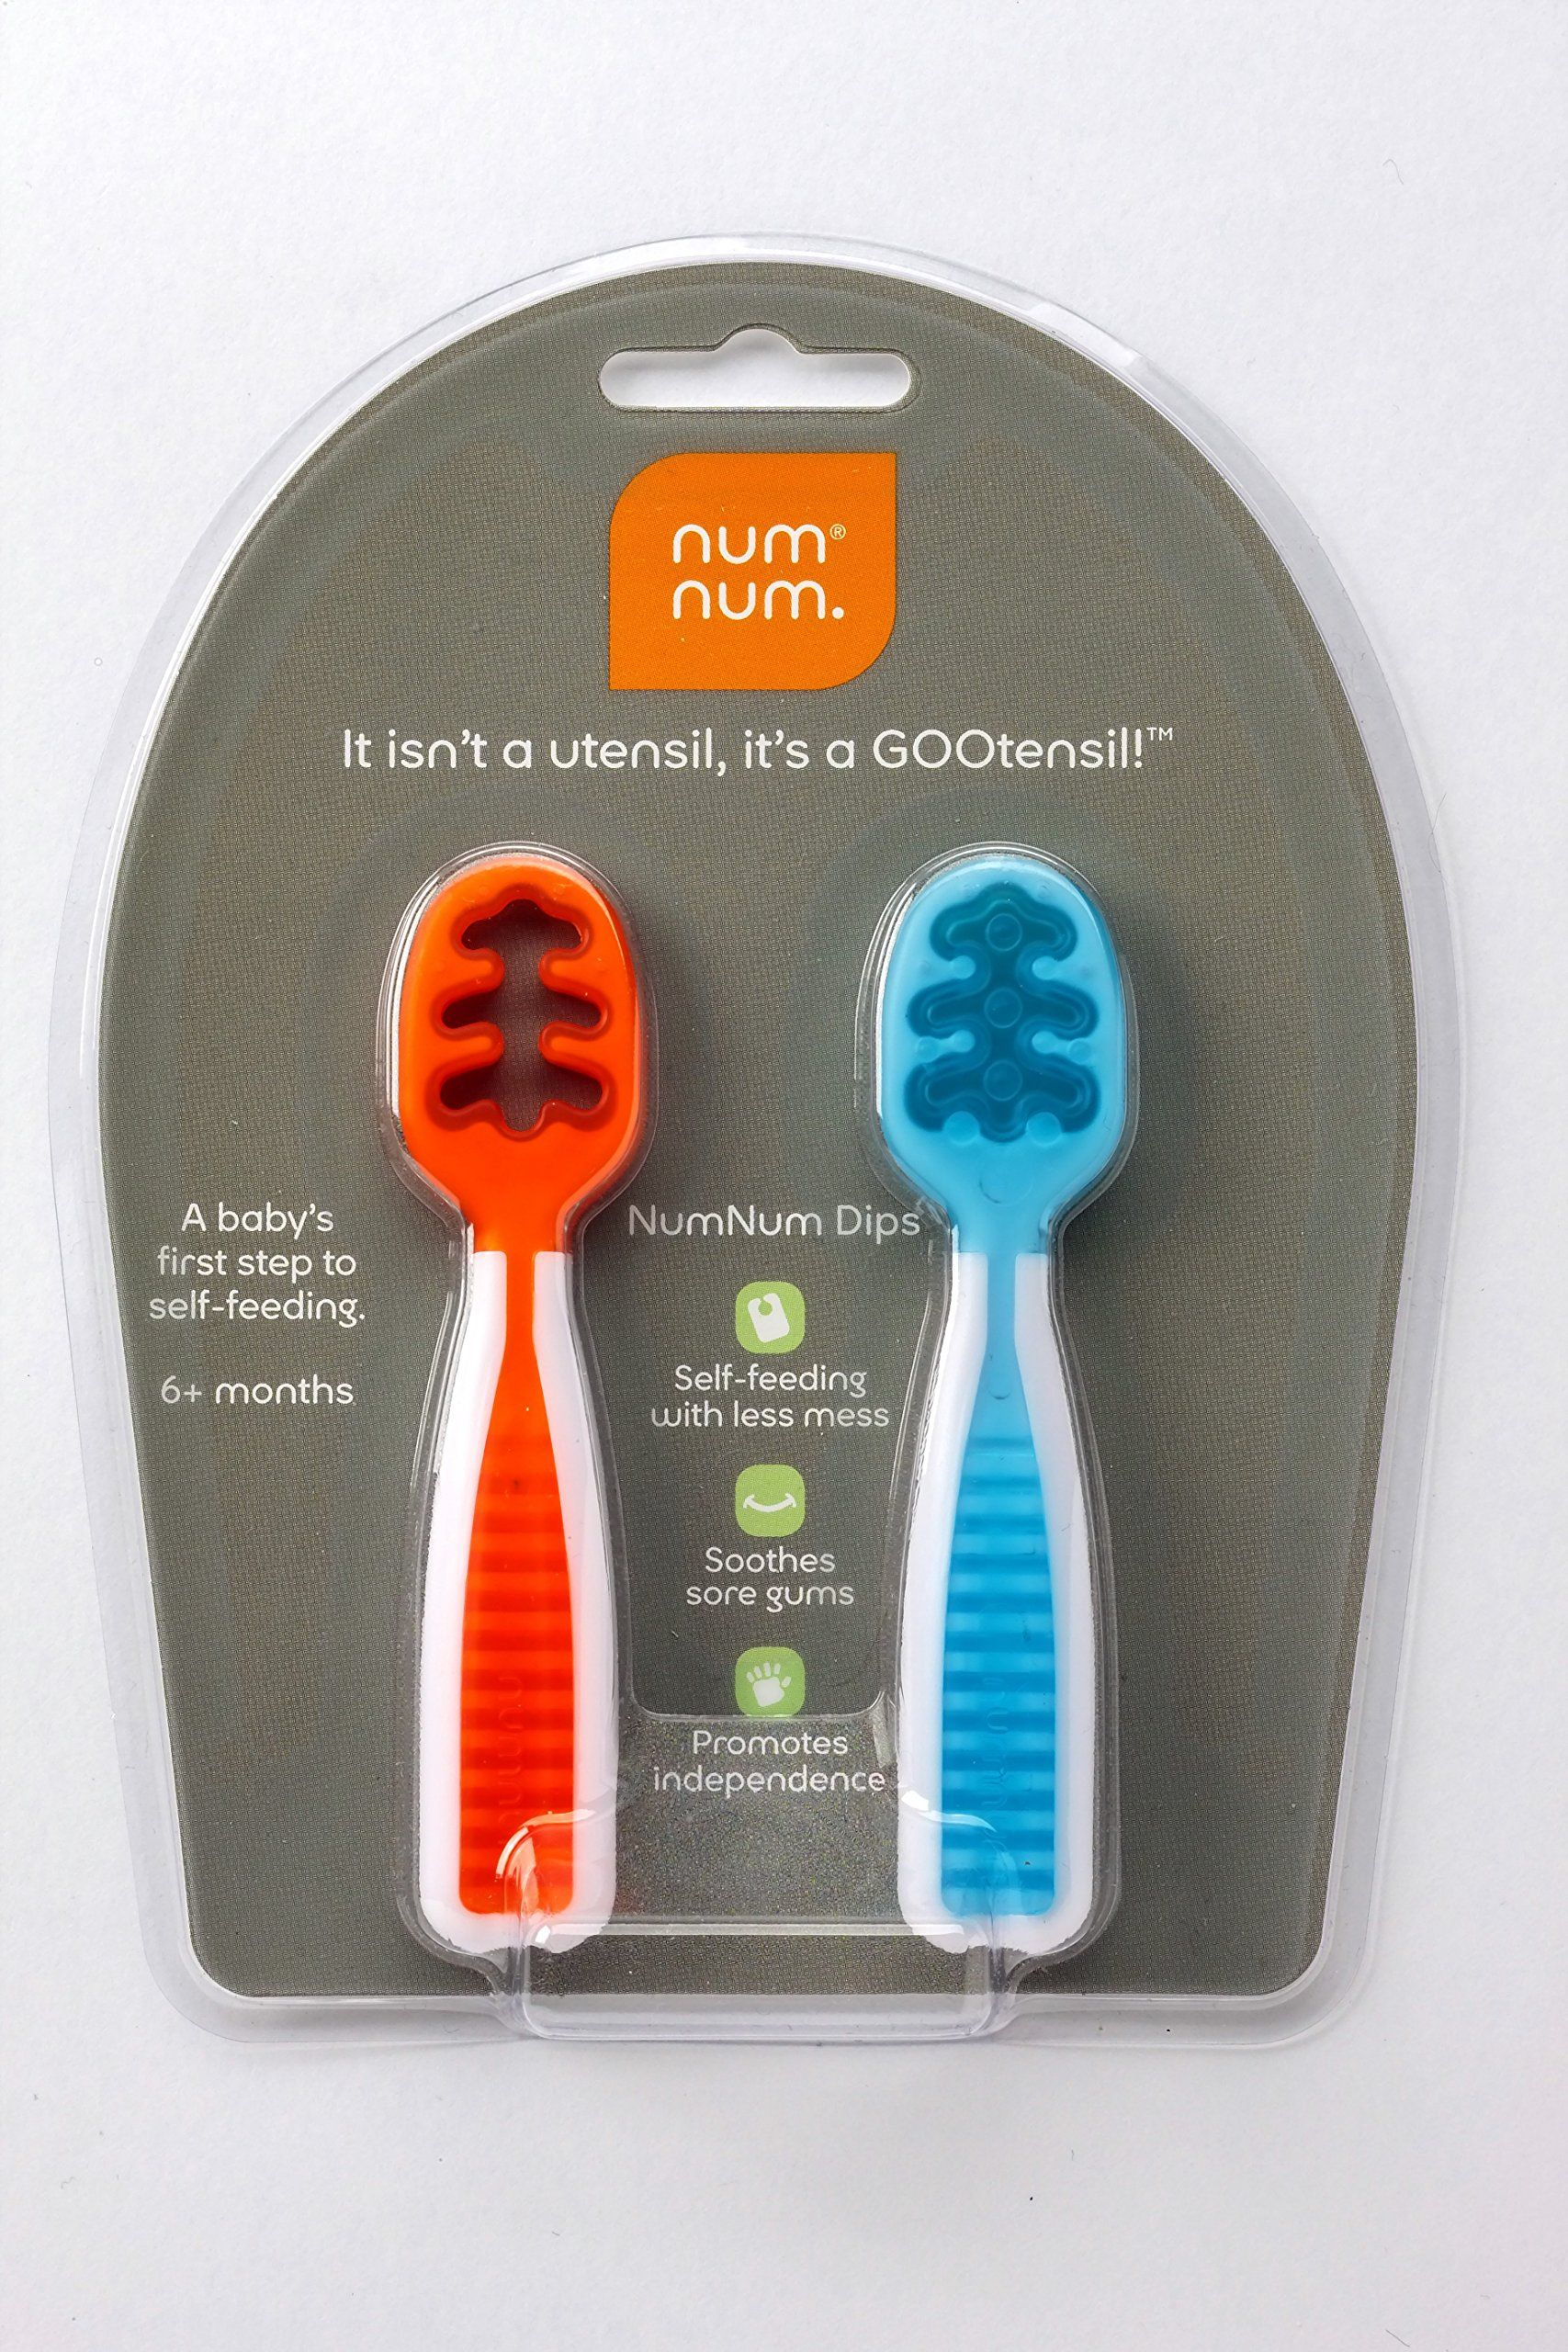 Lot of 2 Packs NumNum Pre-Spoon GOOtensil Baby Spoon 2 Stages 4 Spoons Dips